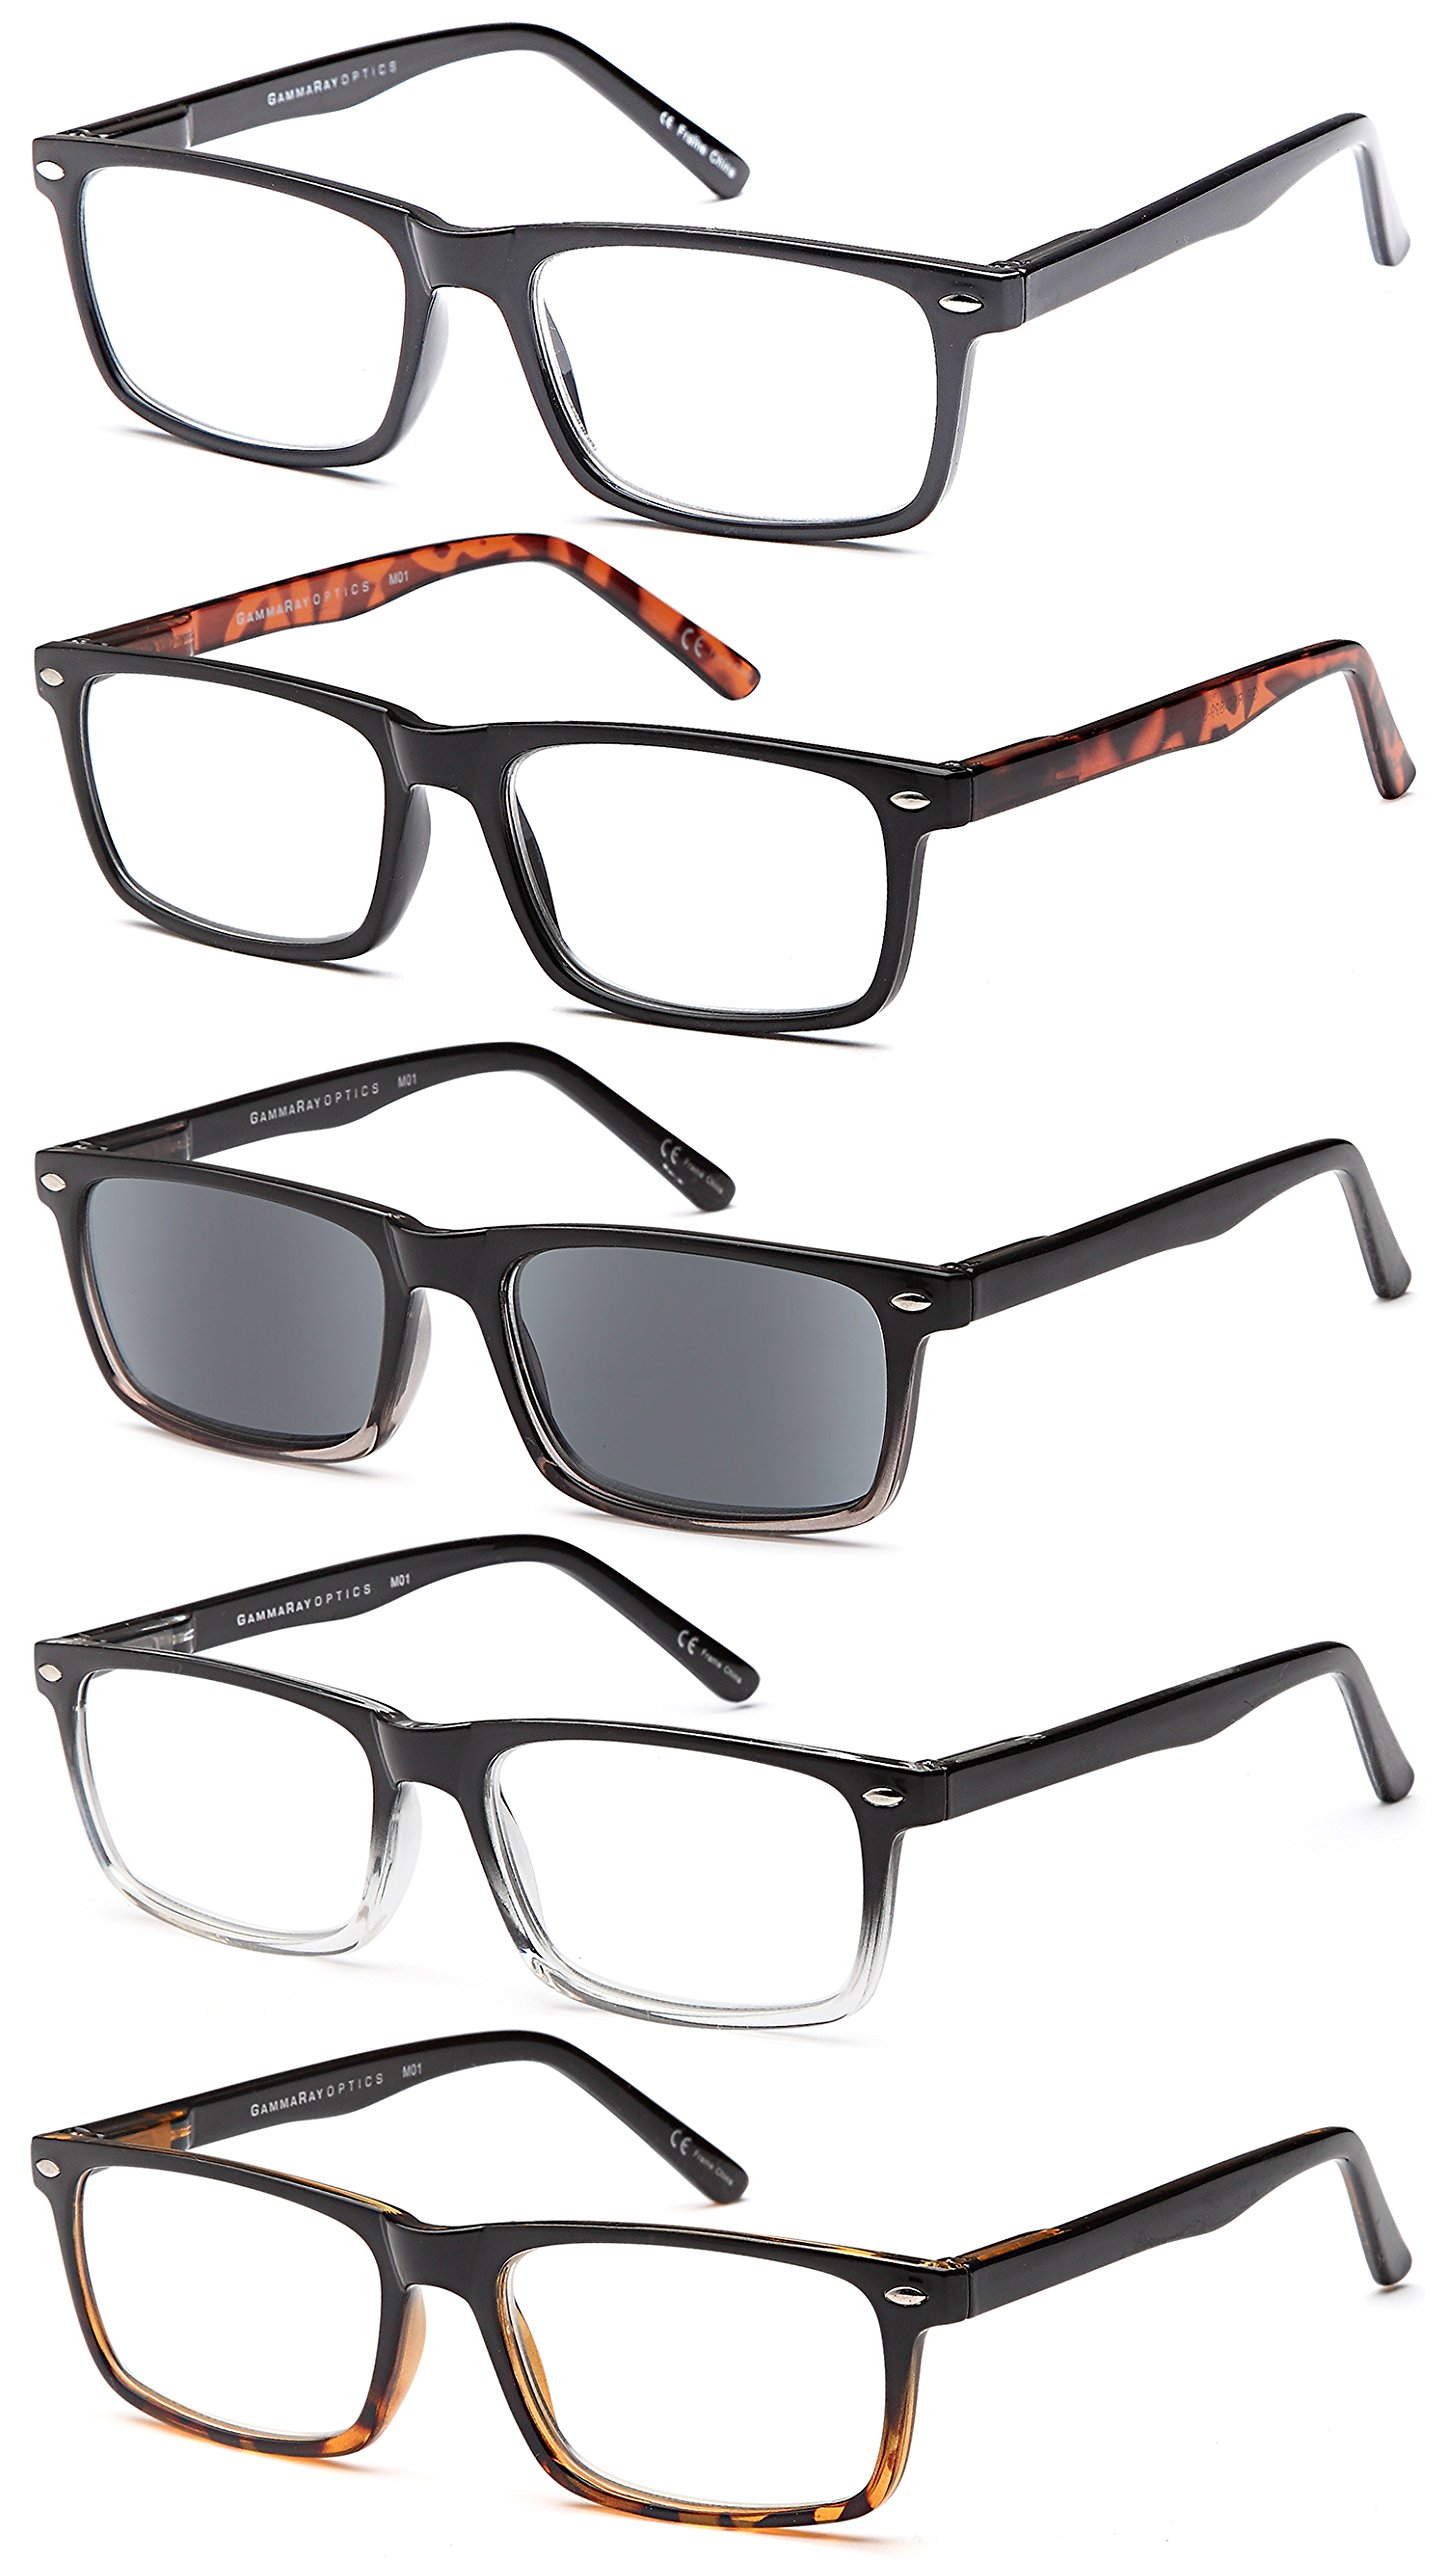 GAMMA RAY 5 Pairs Stylish Spring Loaded Readers Reading Glasses - 1.50x